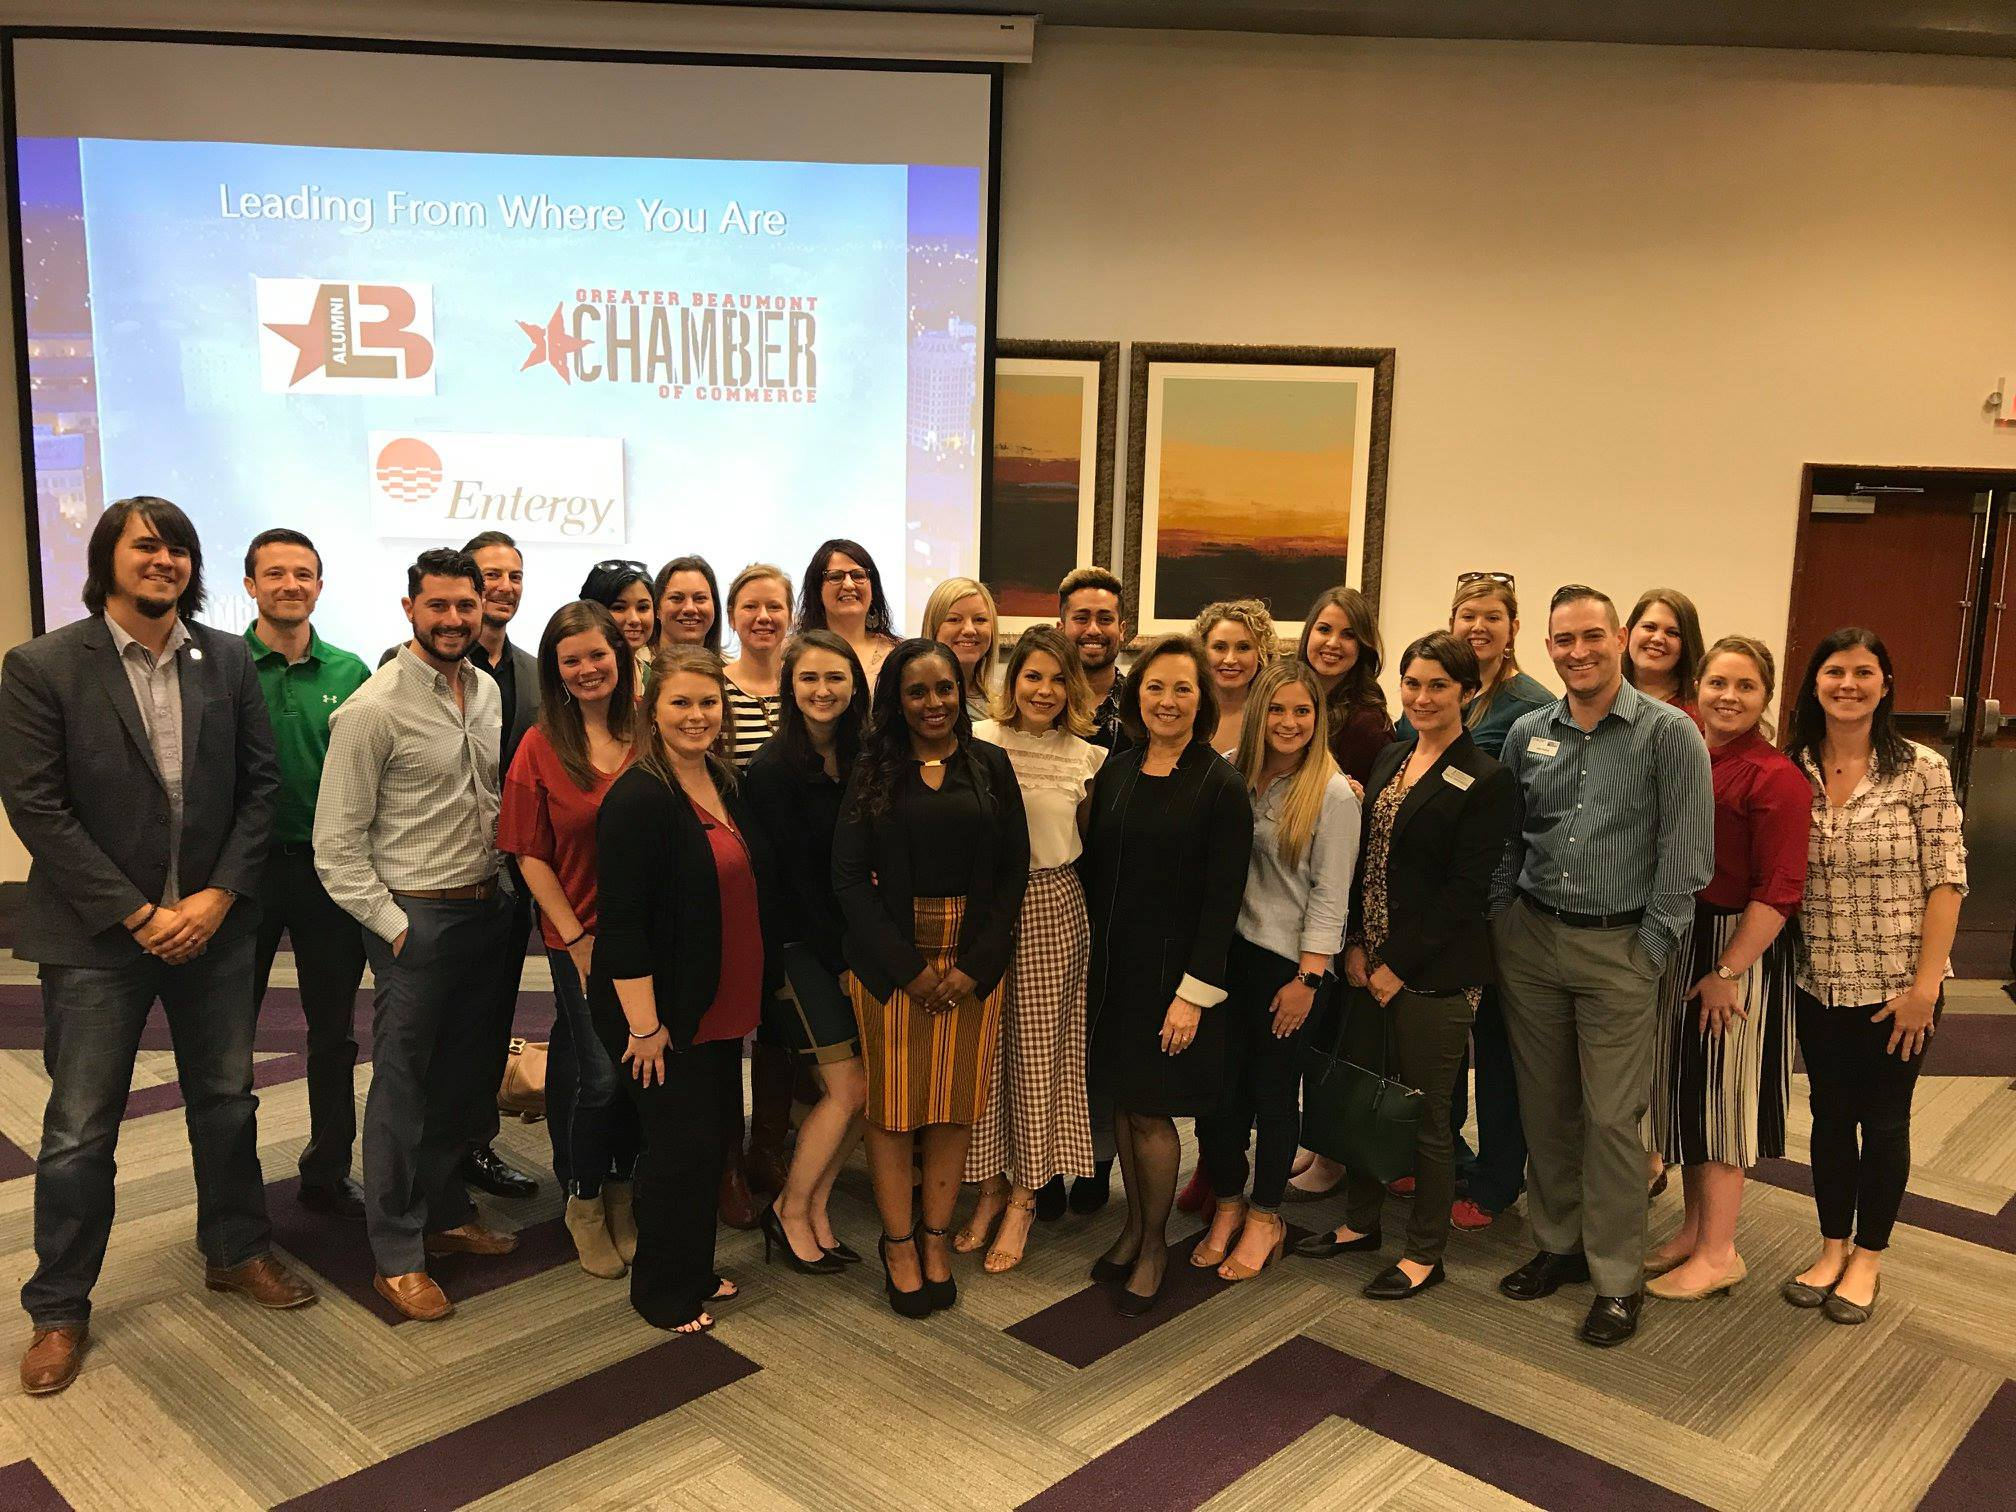 """Leading From Where You Are-Luncheon   """"If your networking circle only includes your coworkers from your department, you need to expand your circle and get uncomfortable to meet new people.""""  - Sallie Rainer, CEO, Entergy Texas"""